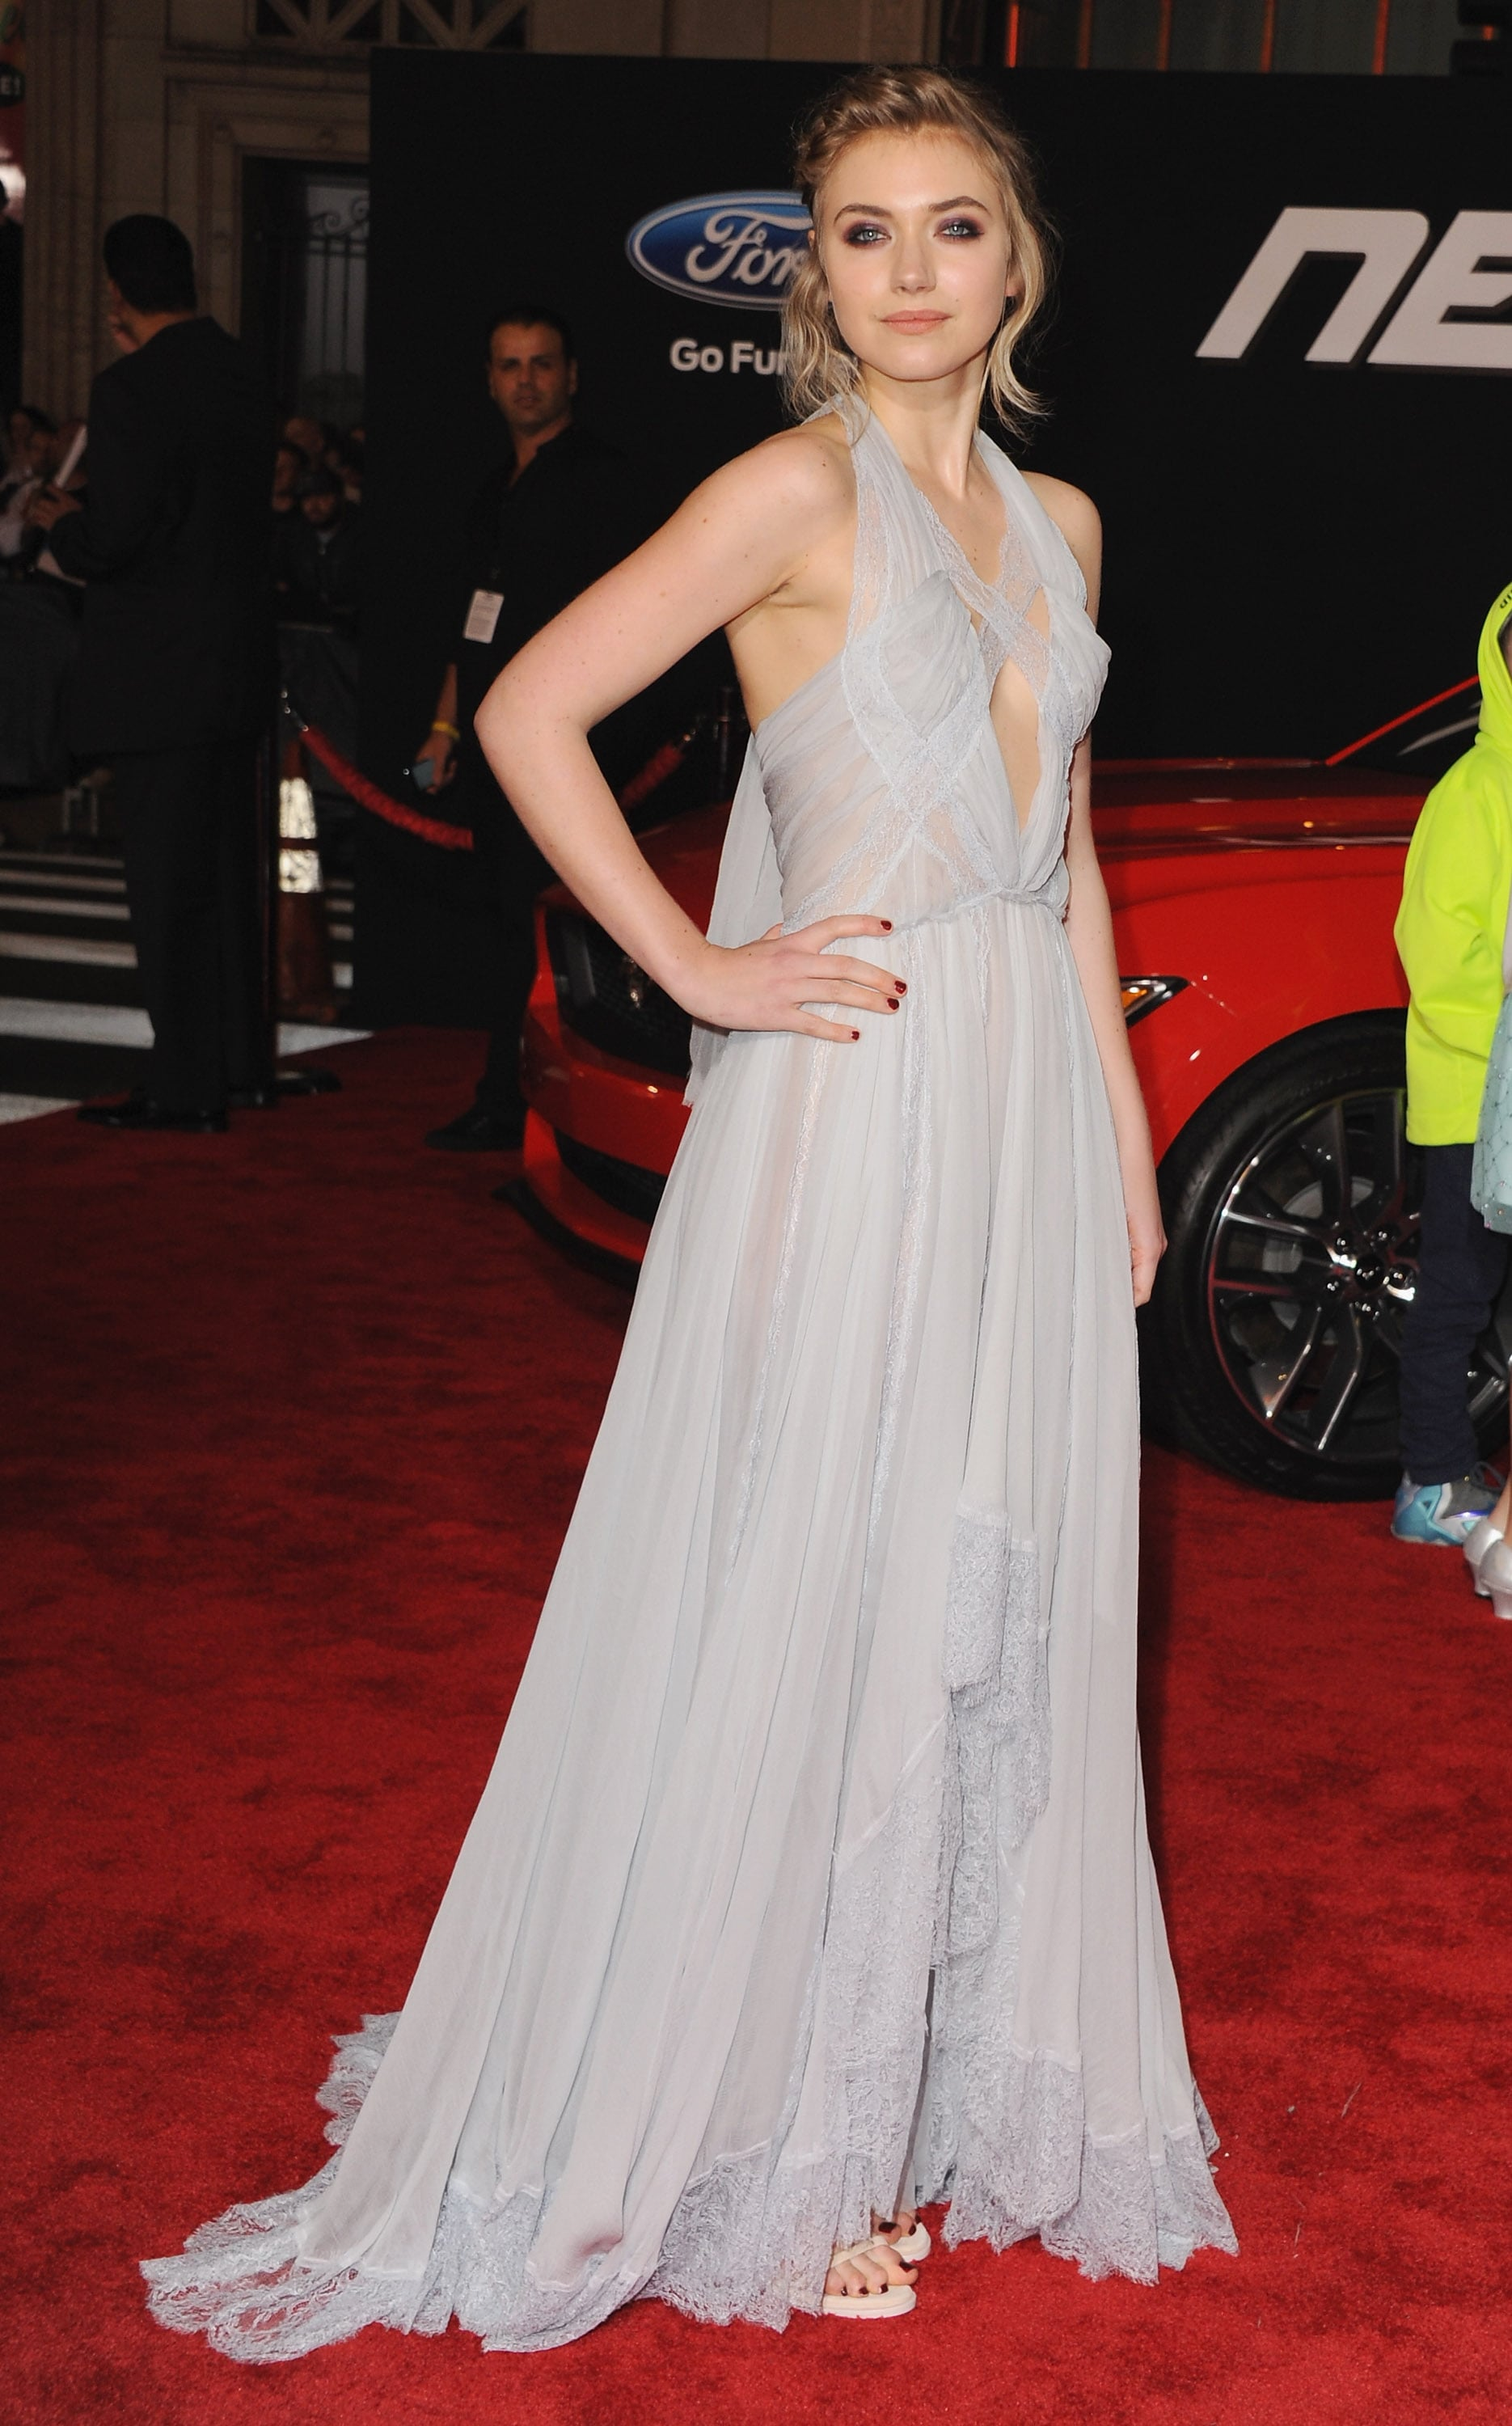 At the Need For Speed premiere, Imogen stunned in a pale chiffon gown by Nina Ricci.